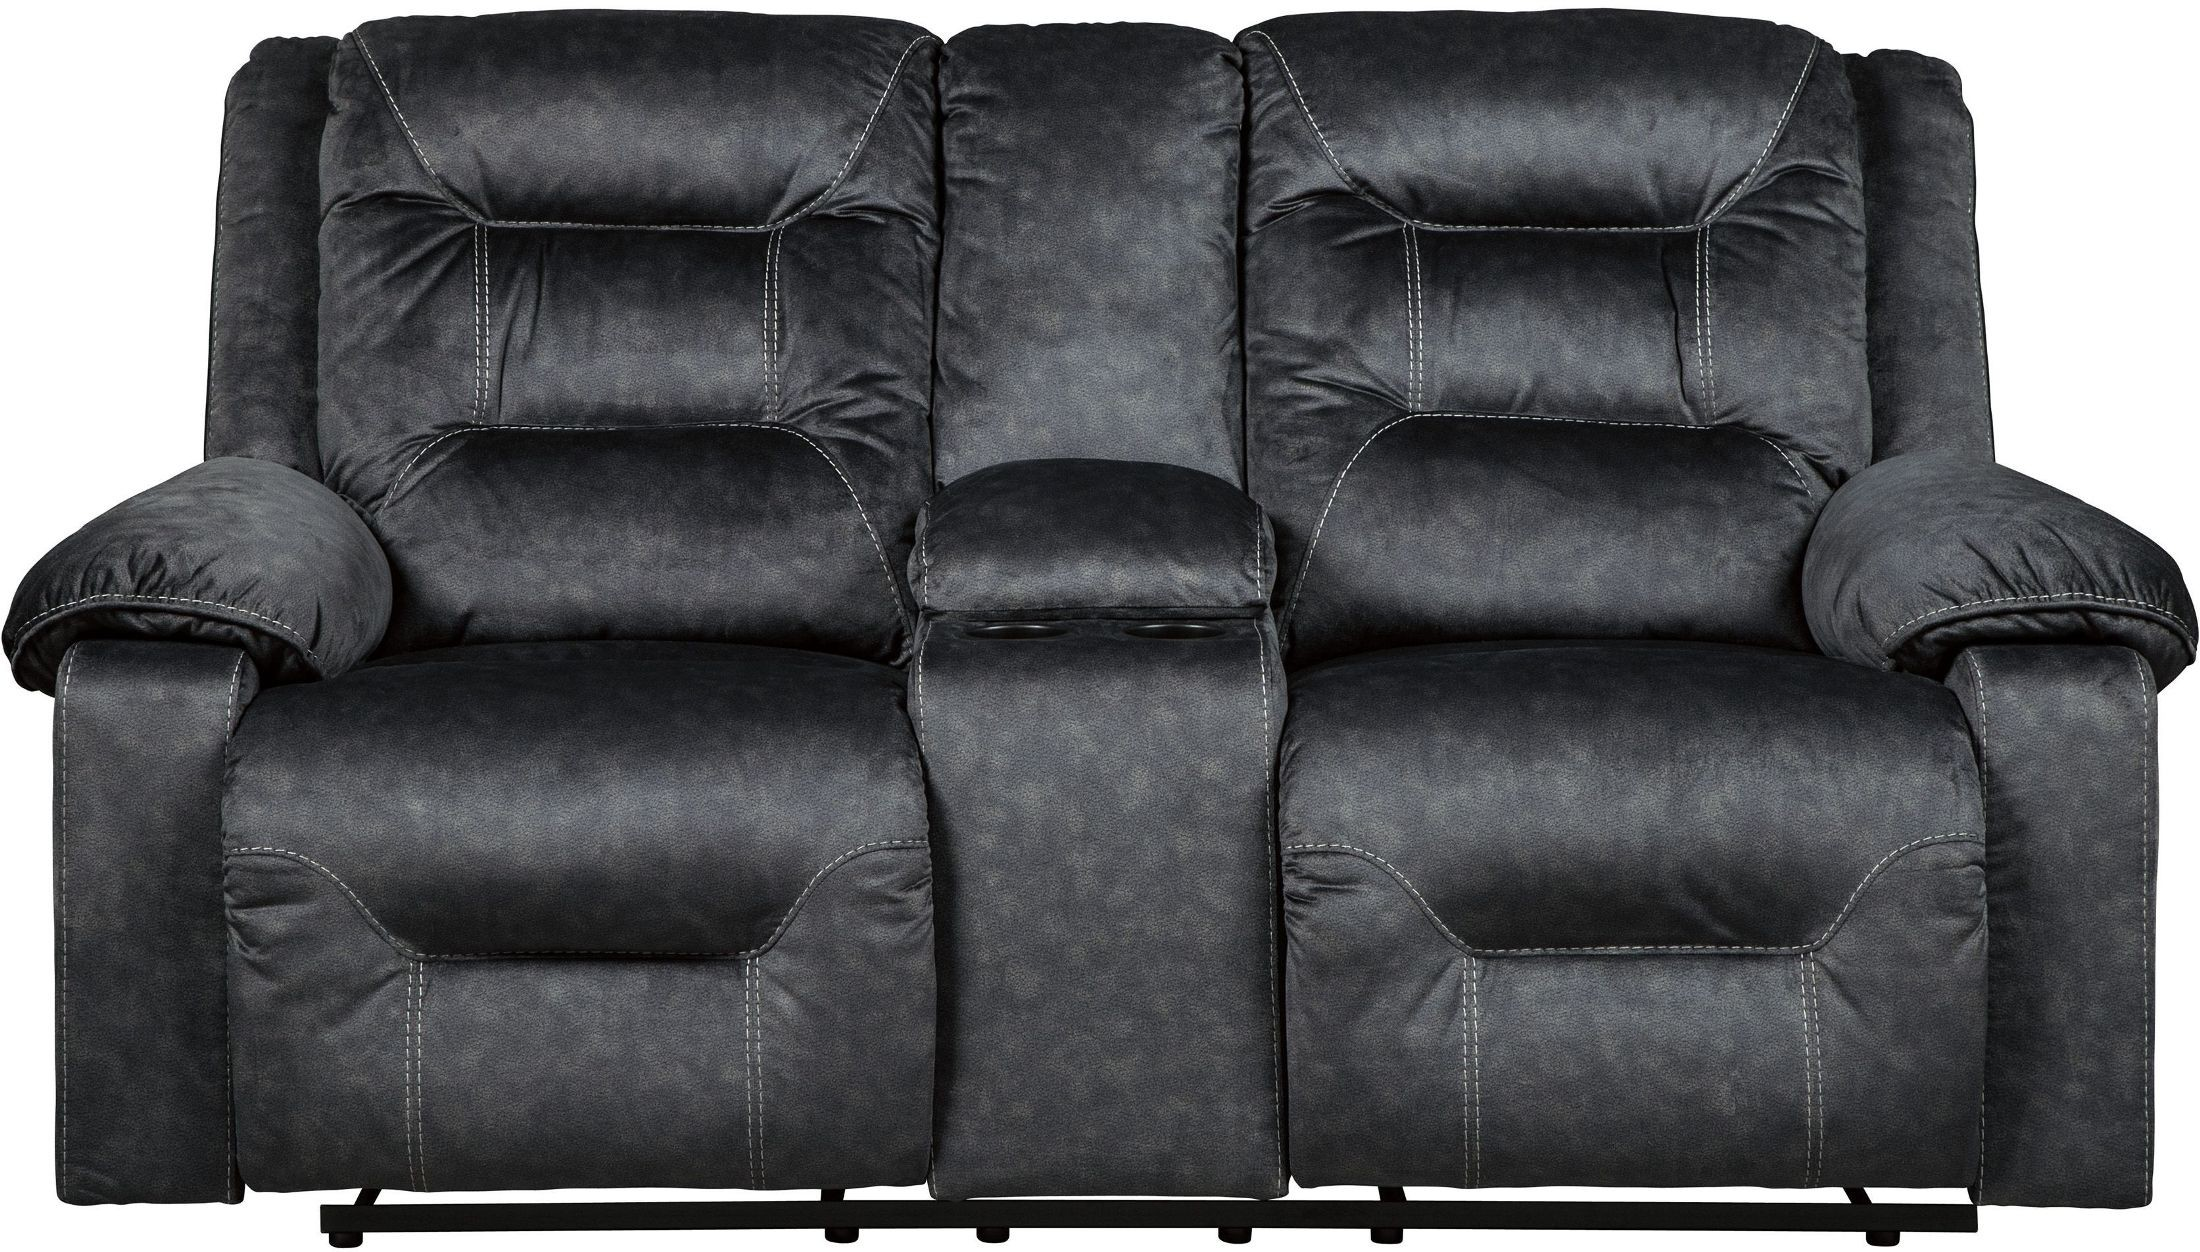 gray power marshall products avenue ls reclining with loveseat jennifer console m sq